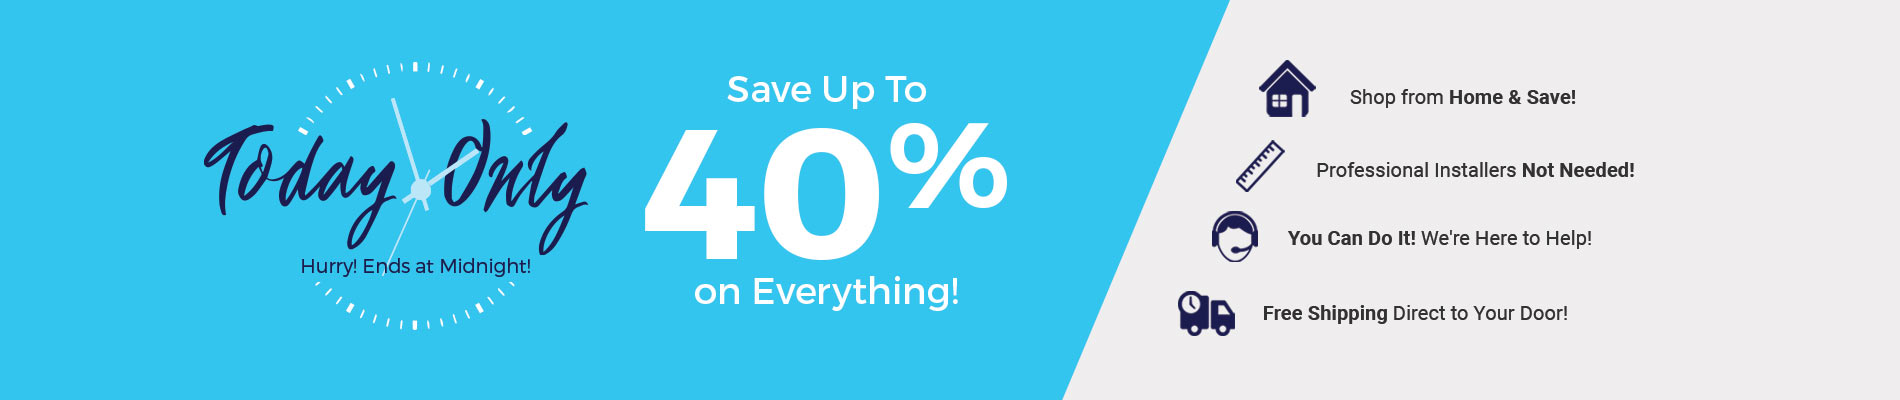 Save Up To 40% on Everything